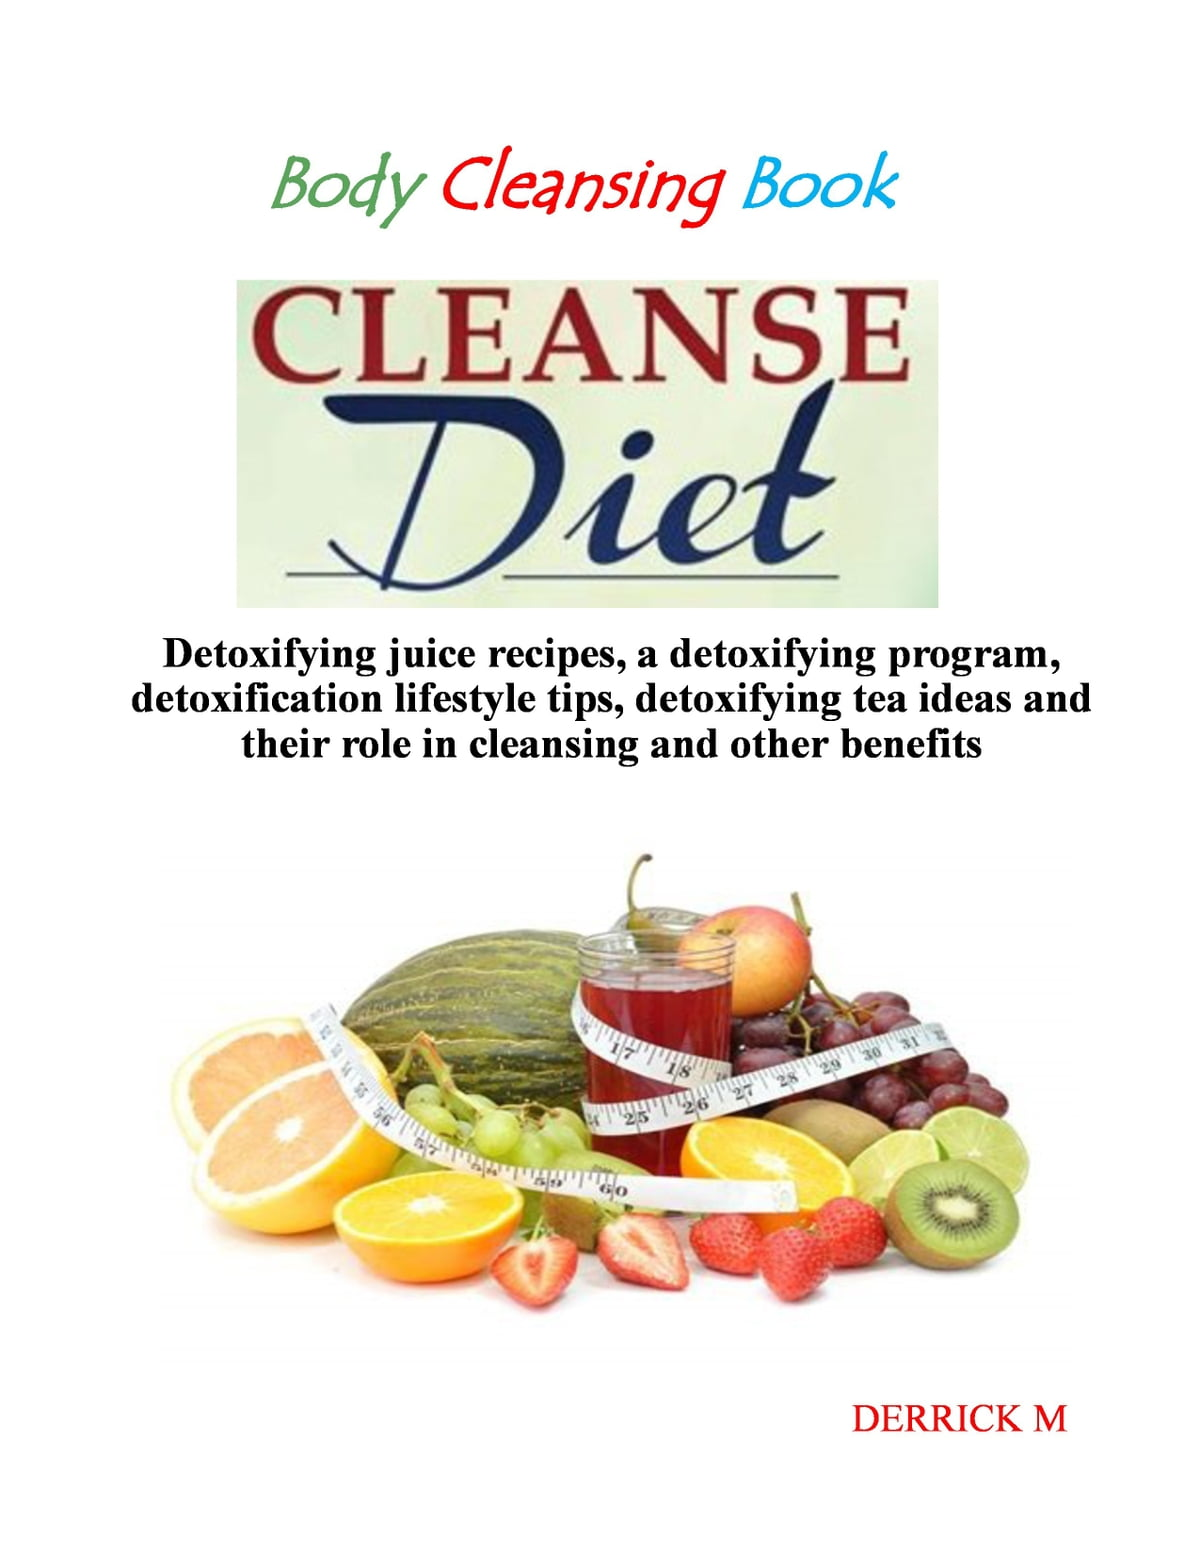 what is body cleansing diet